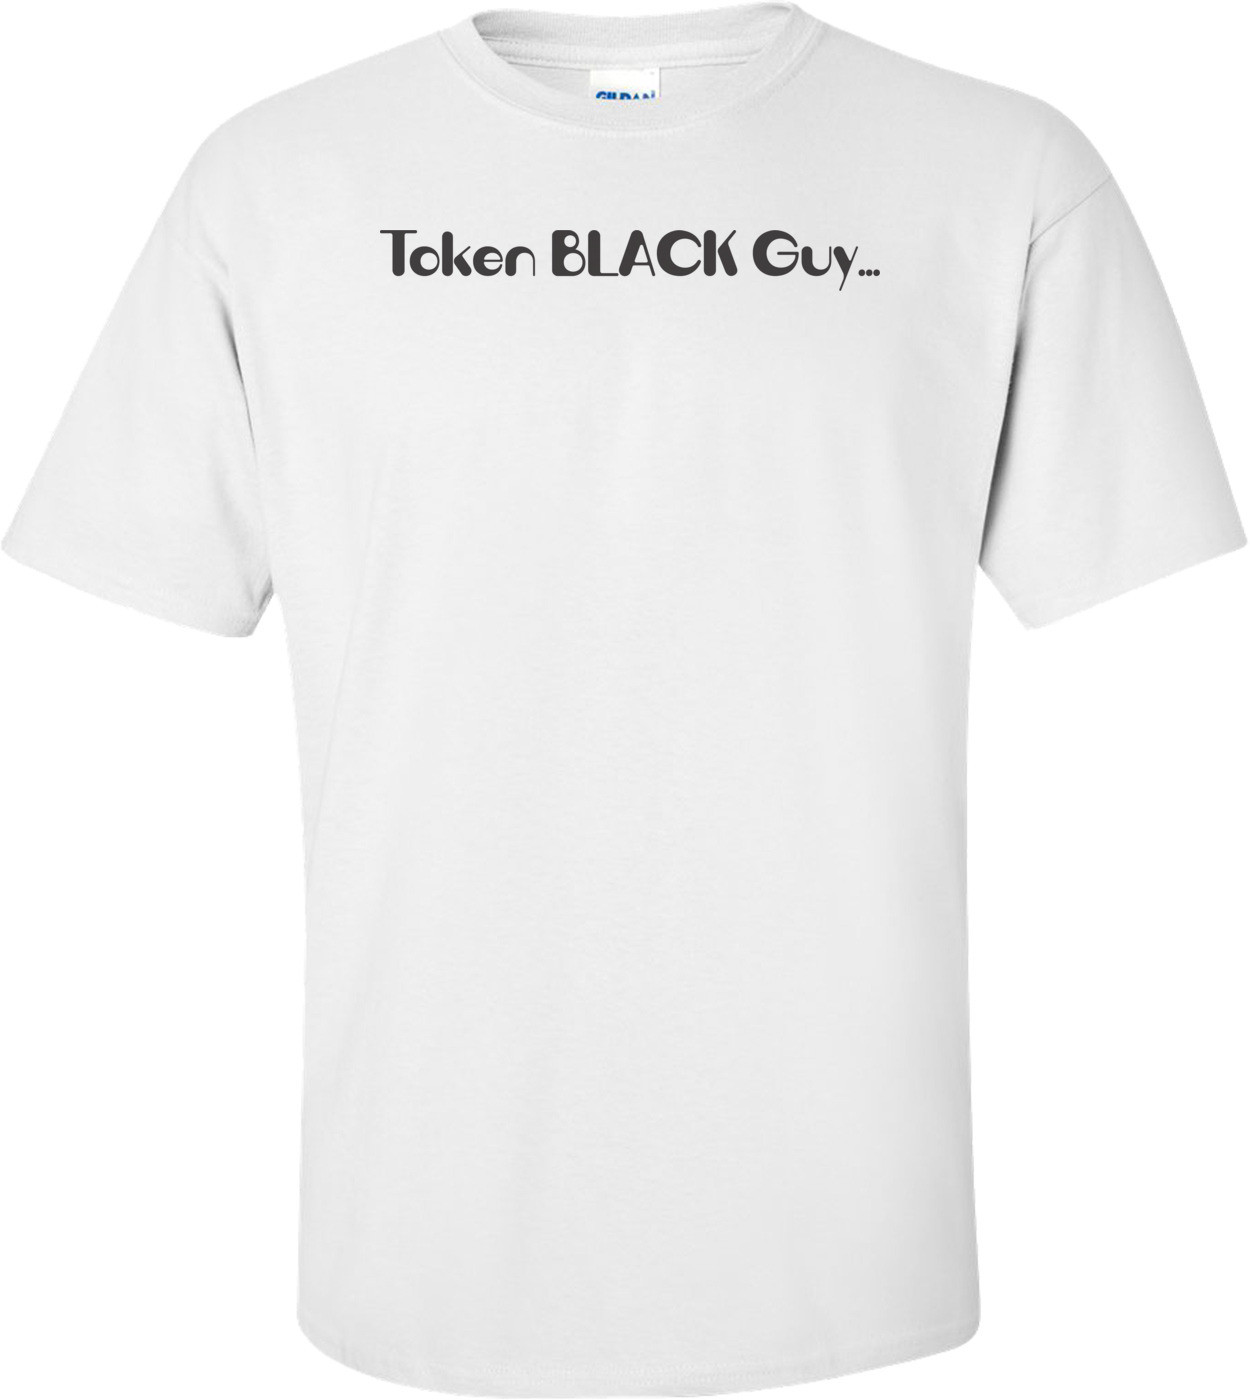 Token Black Guy T-shirt